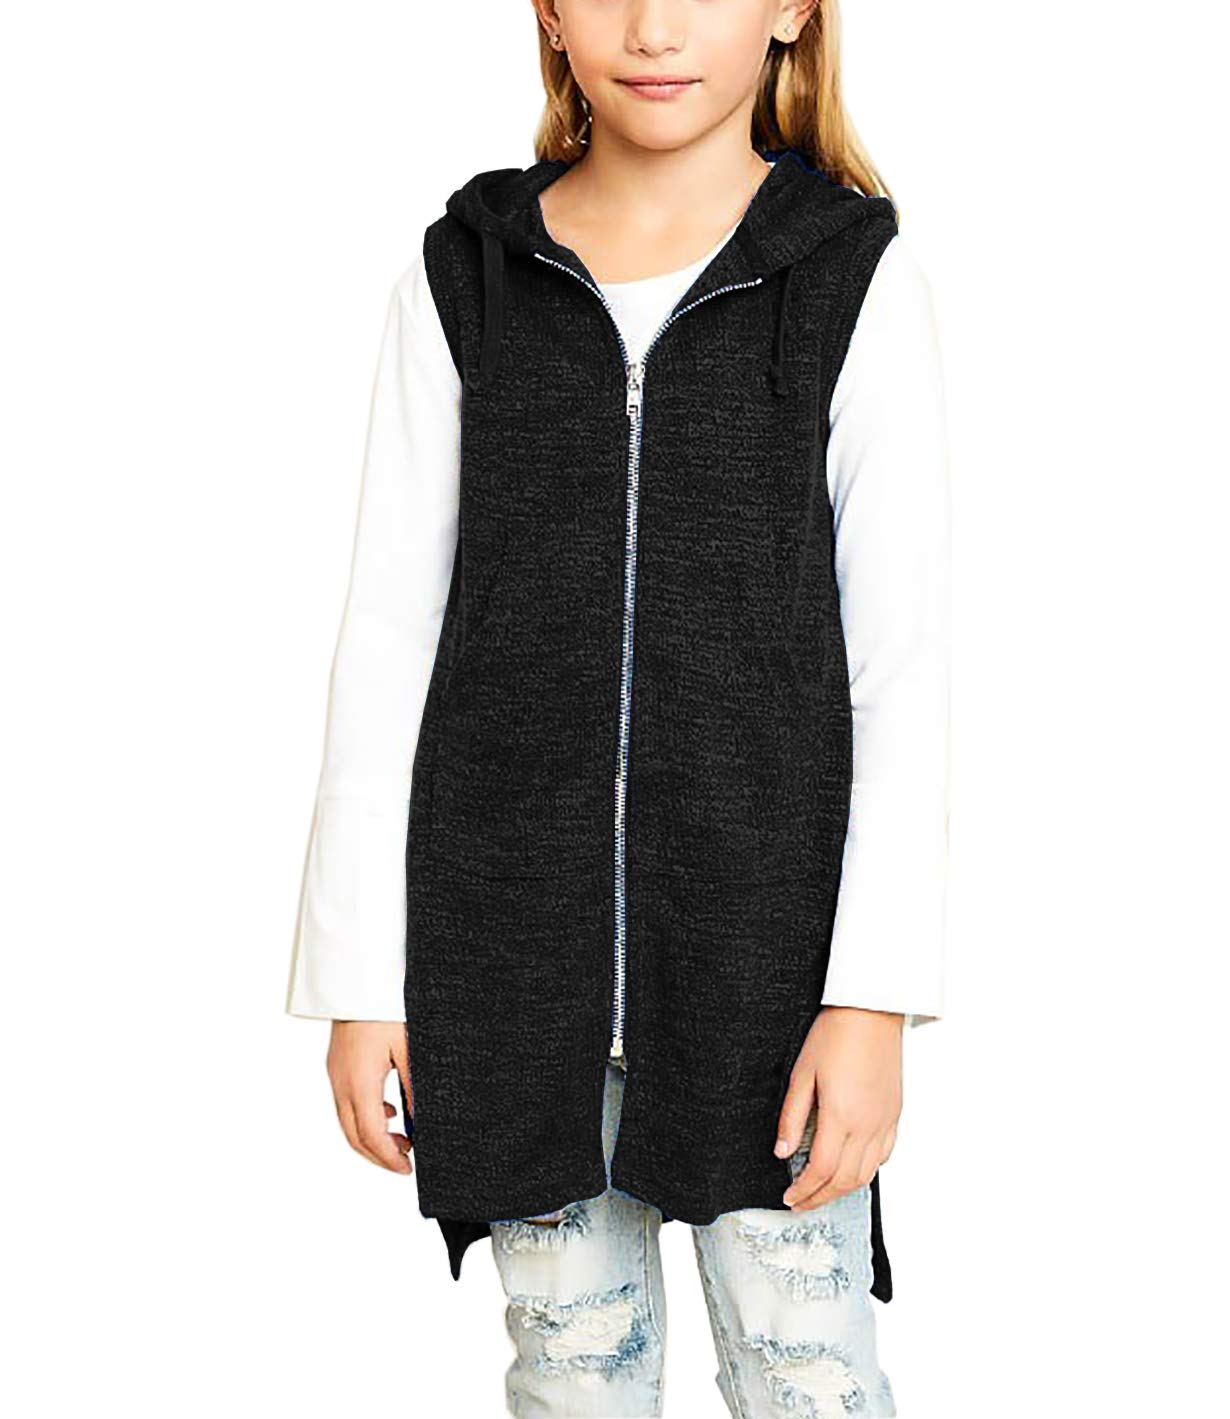 KunLunMen Kids Clothes Girls Vests Knit Hooded Jackets Tops Sleeveless Outerwear 4-5 Years